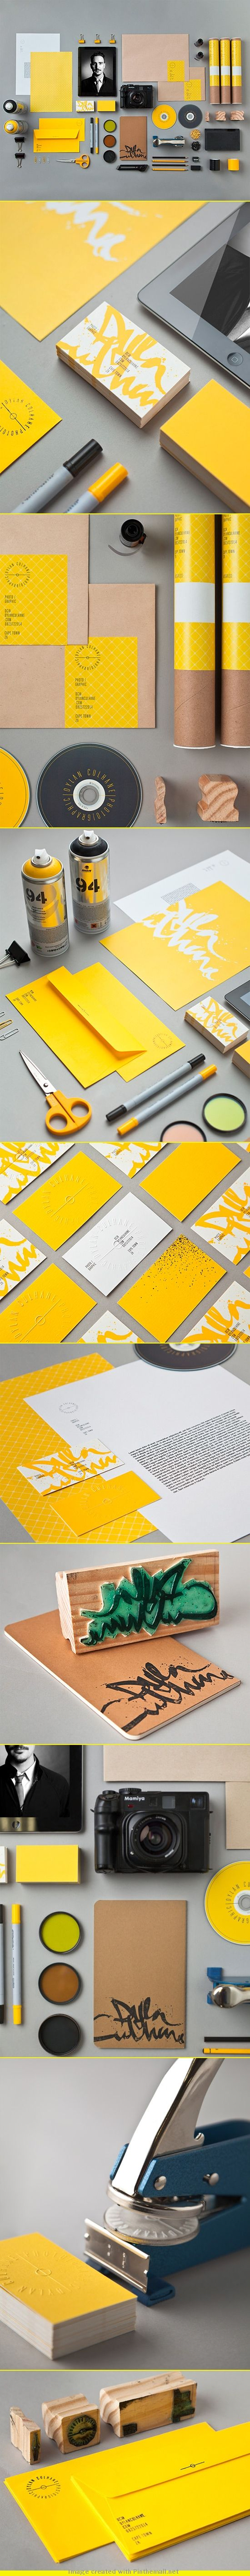 #17: Dylan Cuhane photographer identity design.